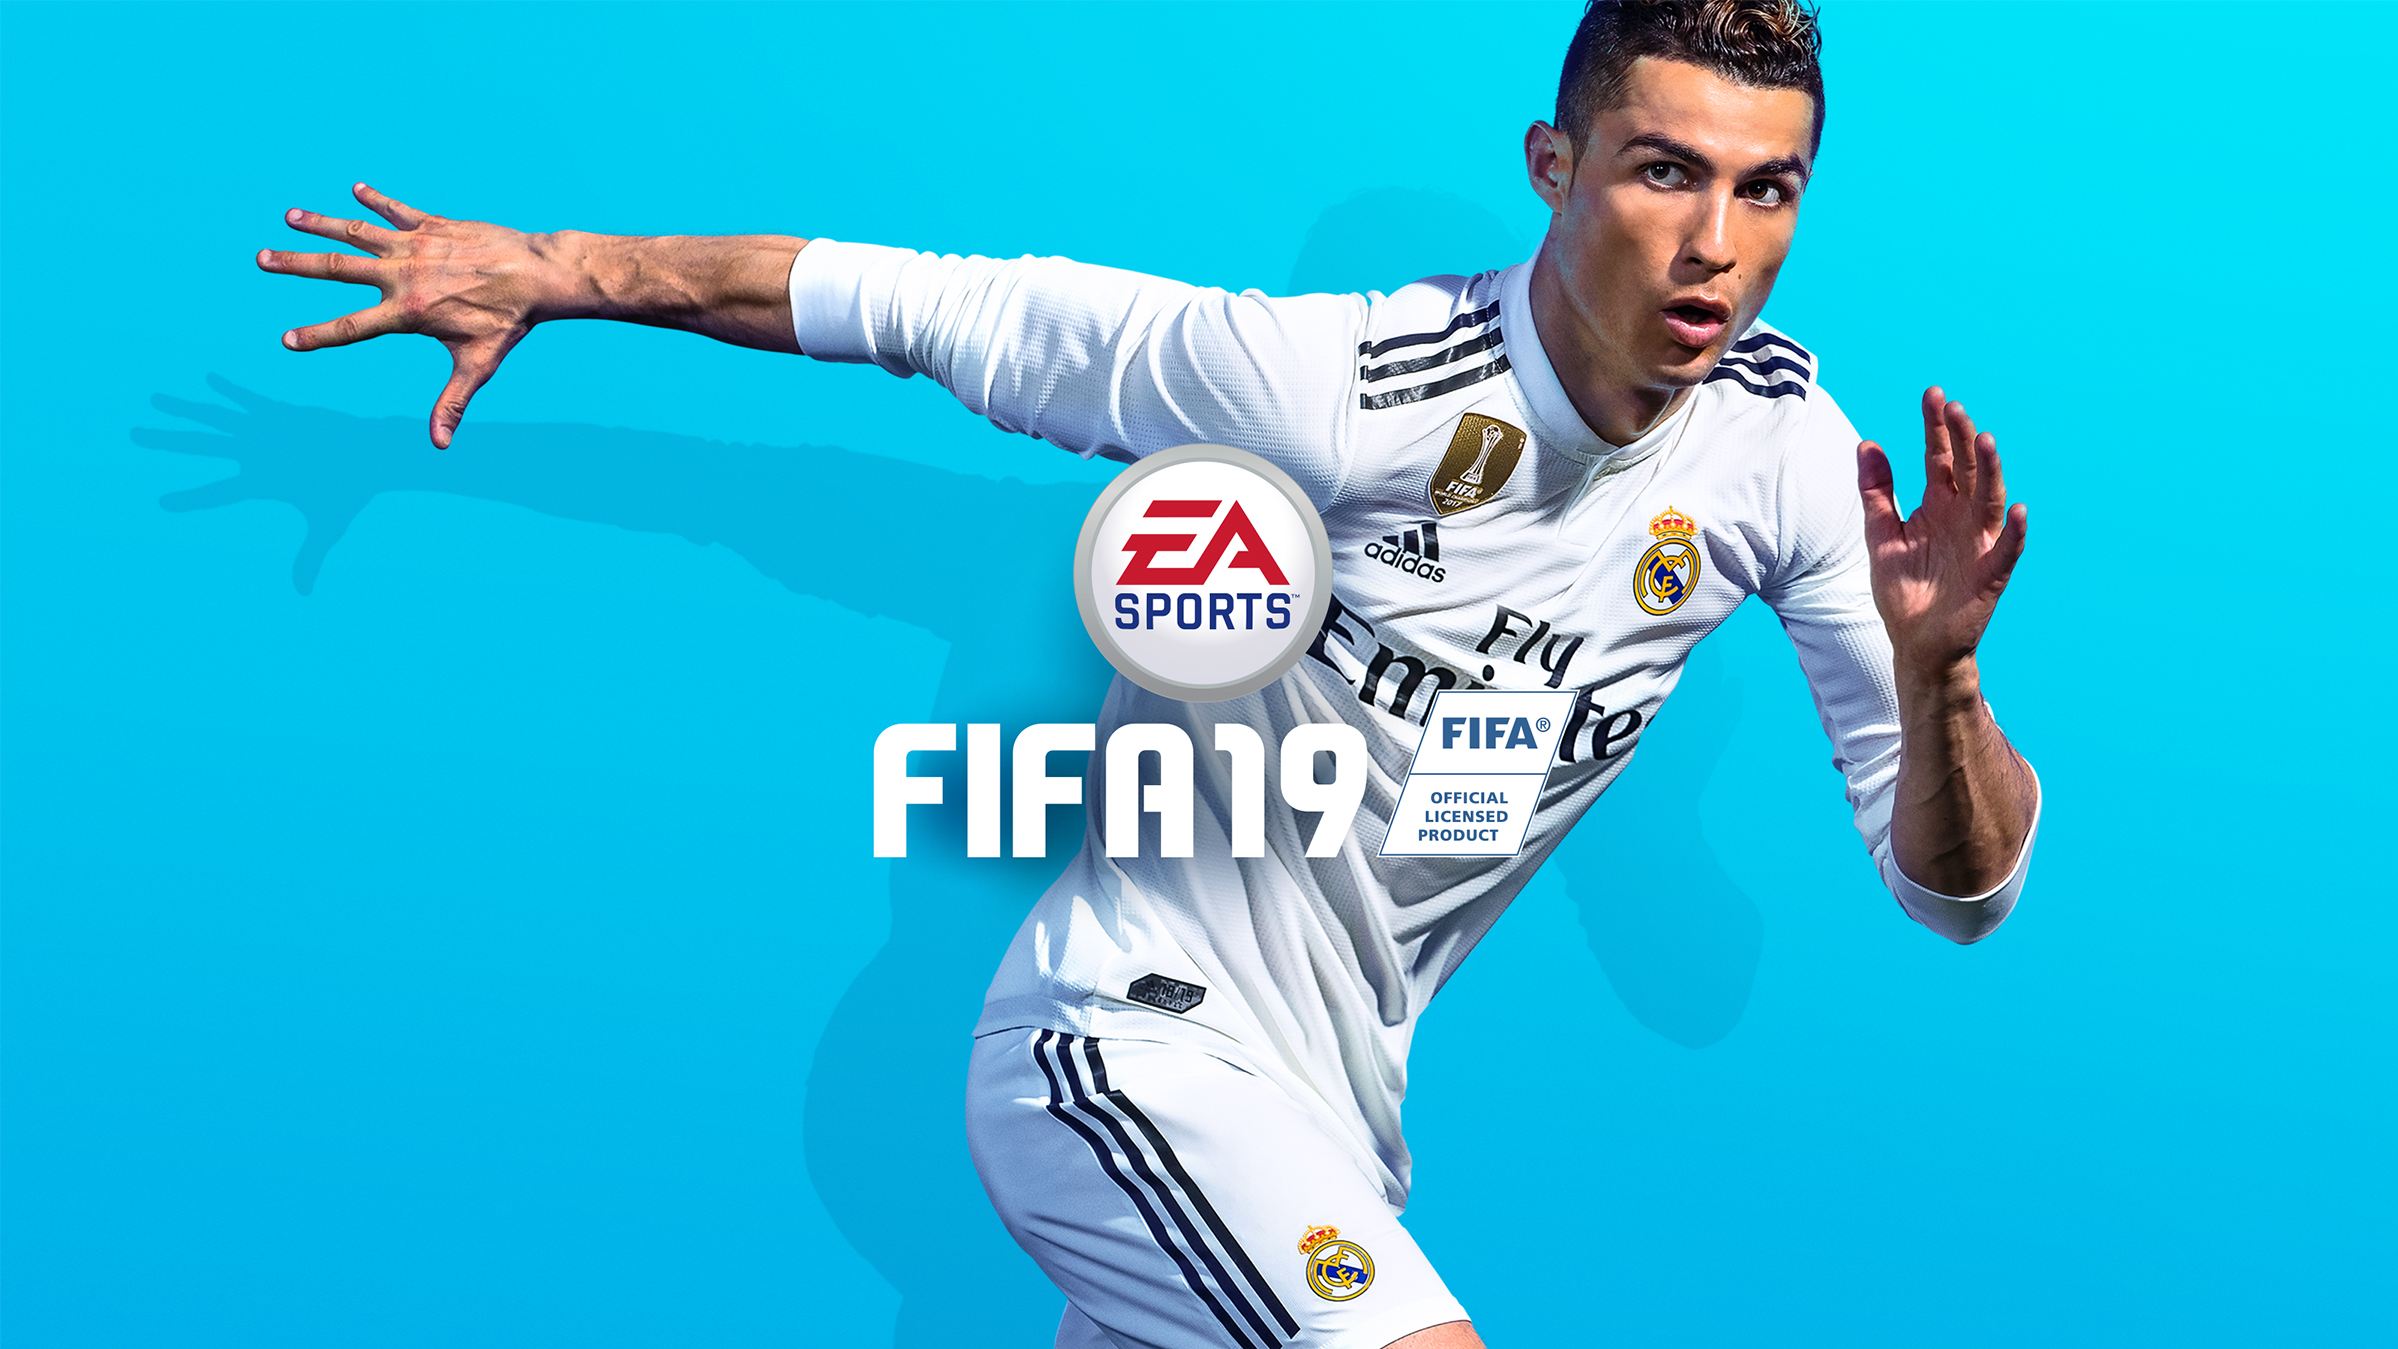 Rare Player Pack FIFA 19: Is it Worth the Price?